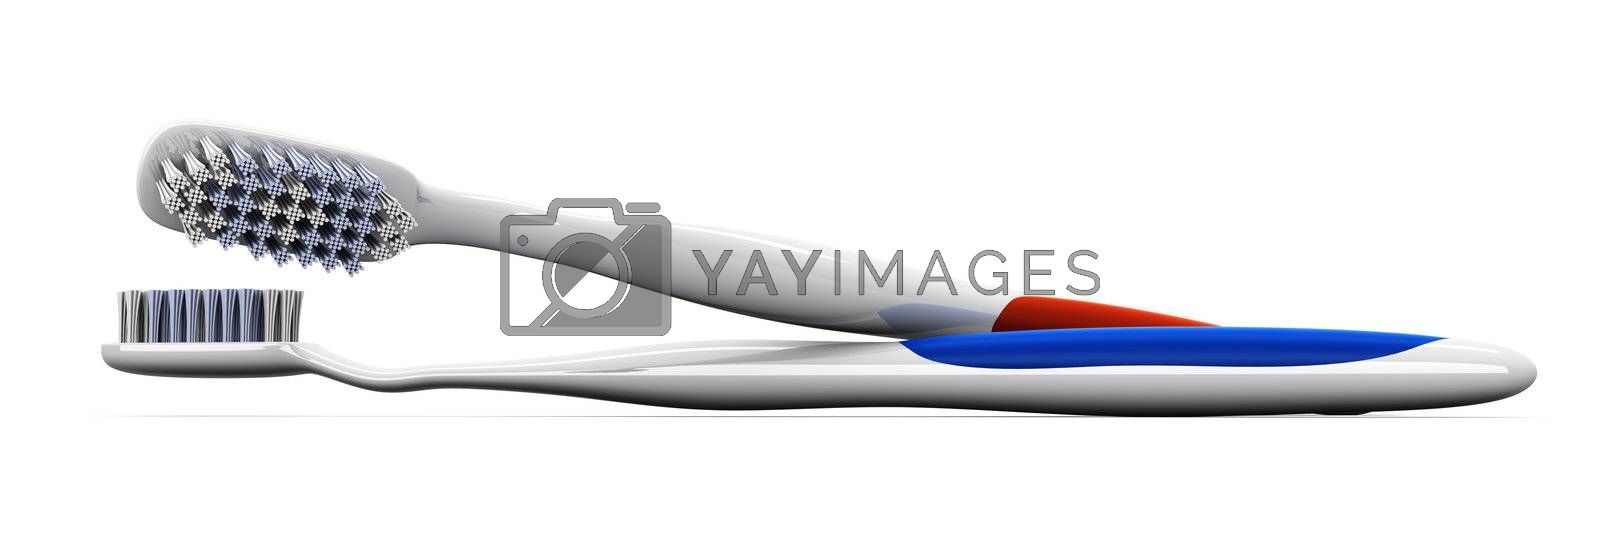 3D rendered Illustration. isolated on white.